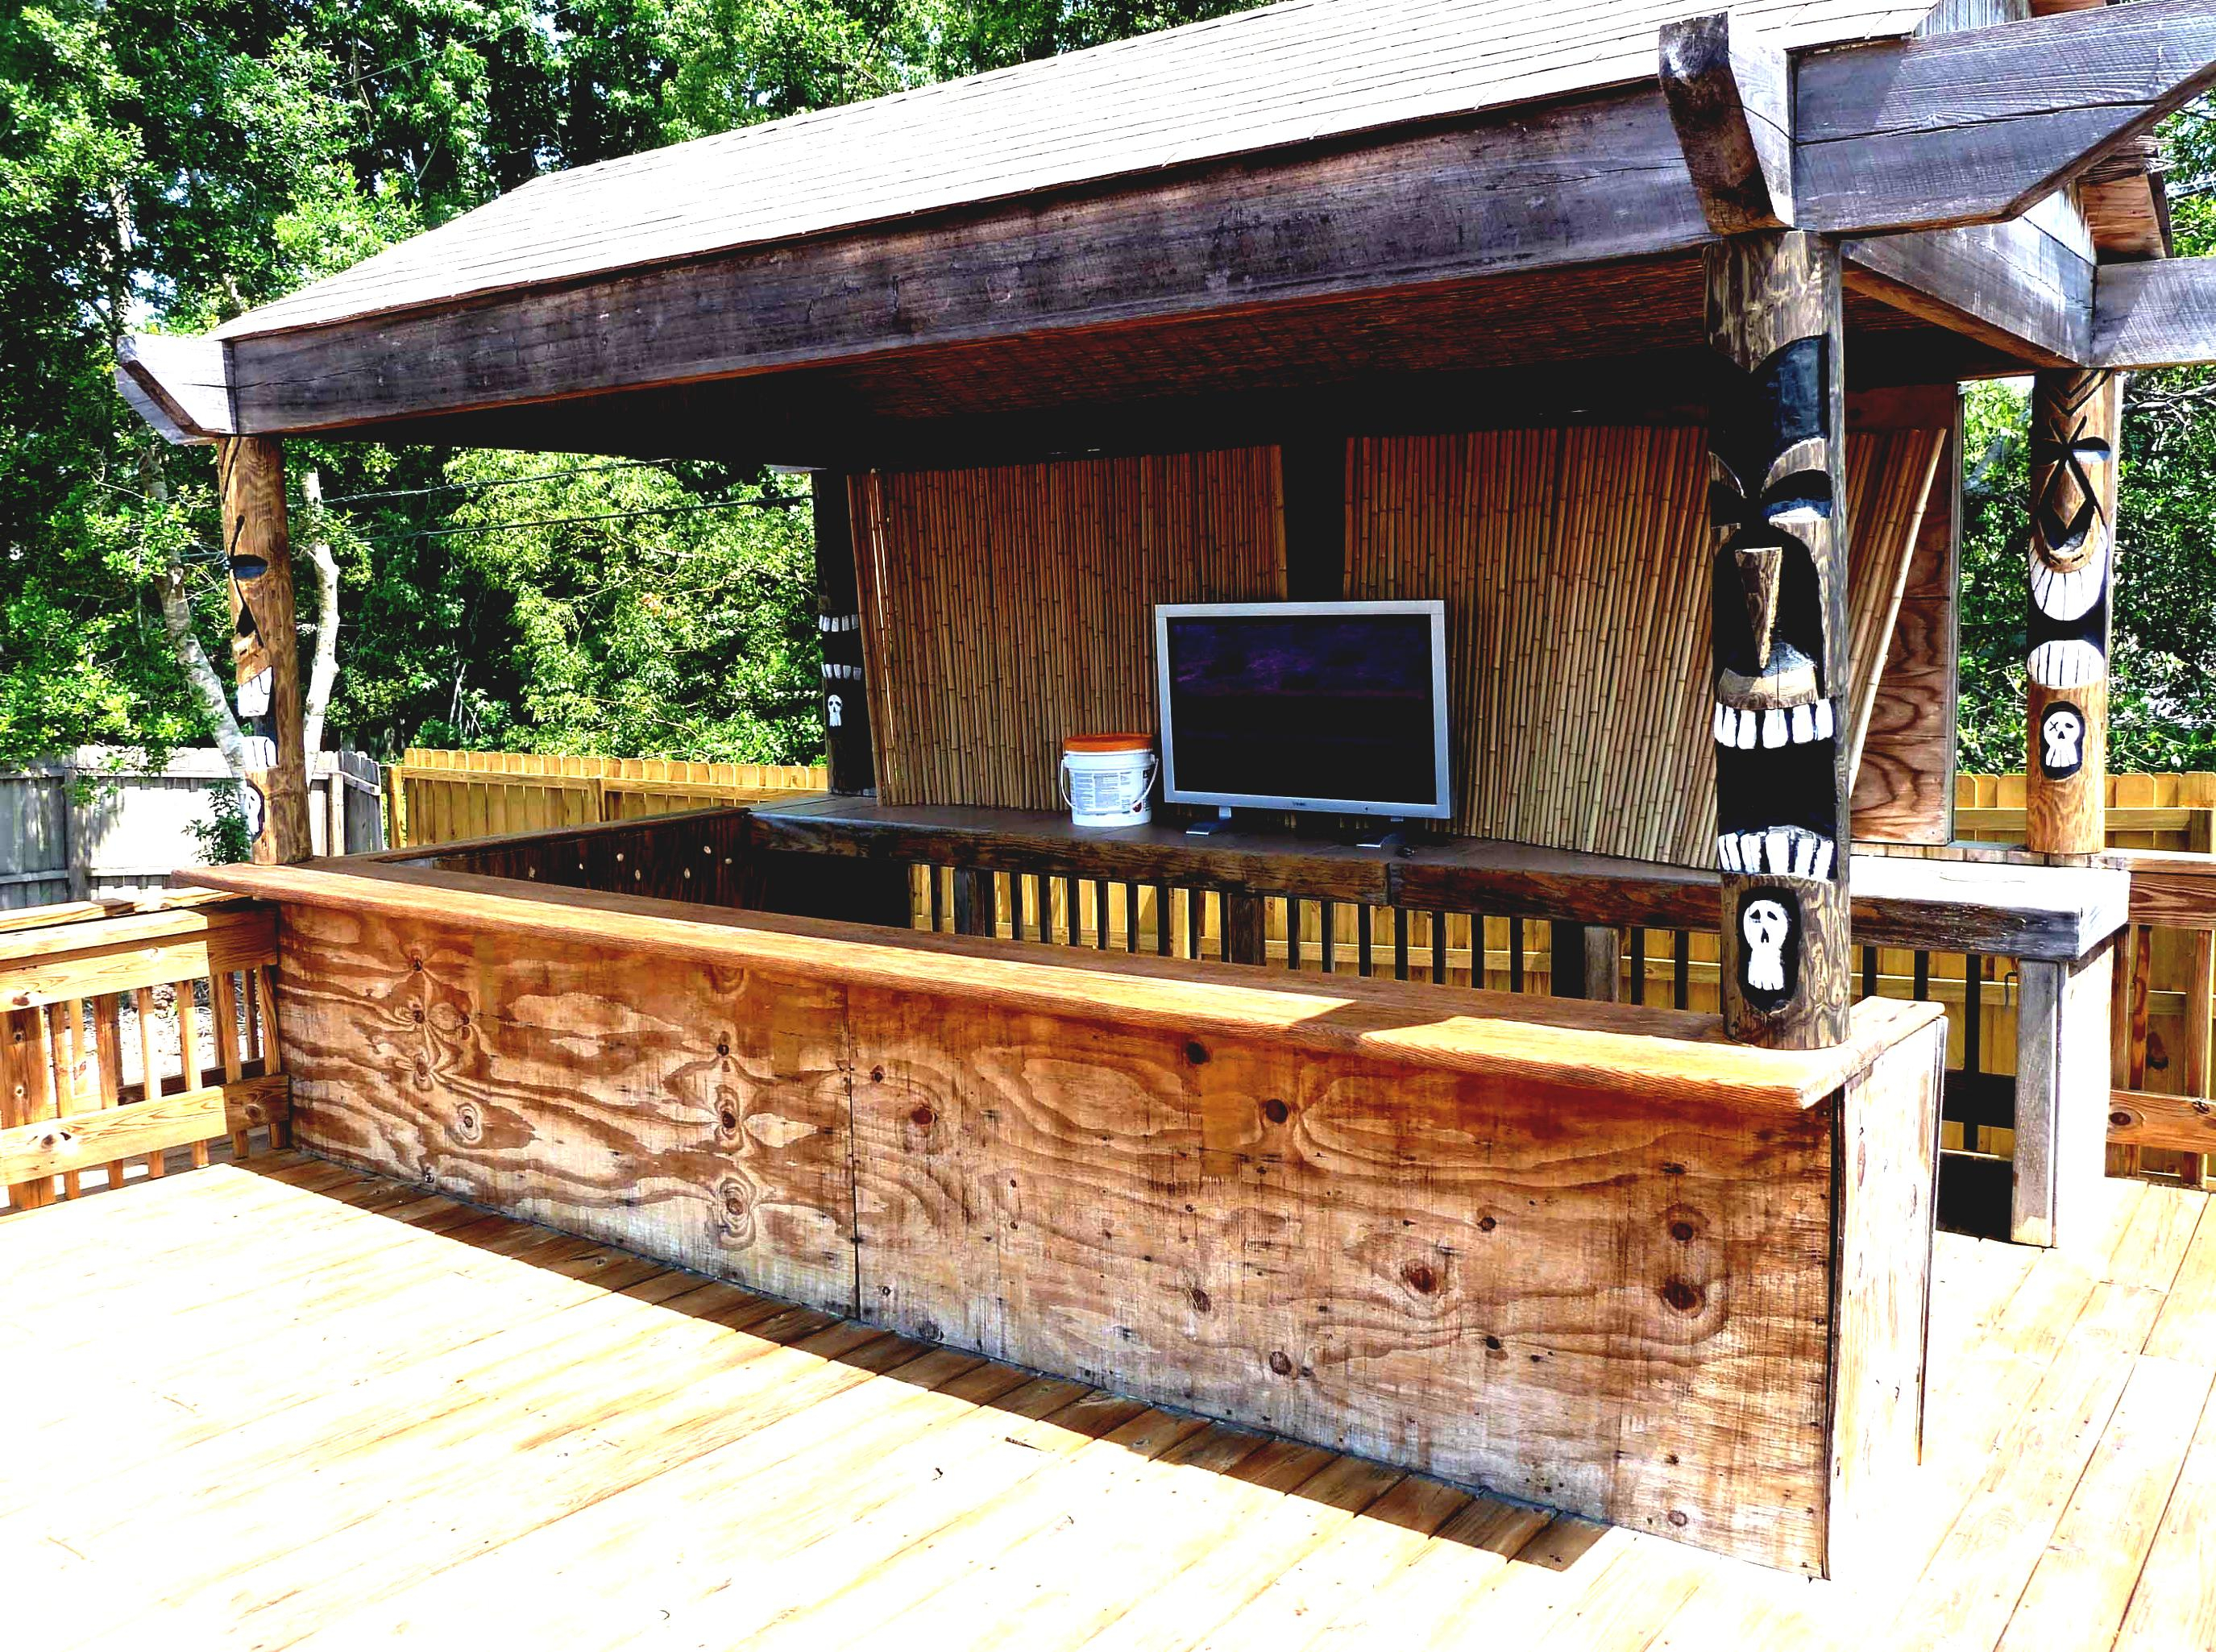 Tiki Hut Design Ideas Myinterior Myinterior within Backyard Tiki Bar Ideas